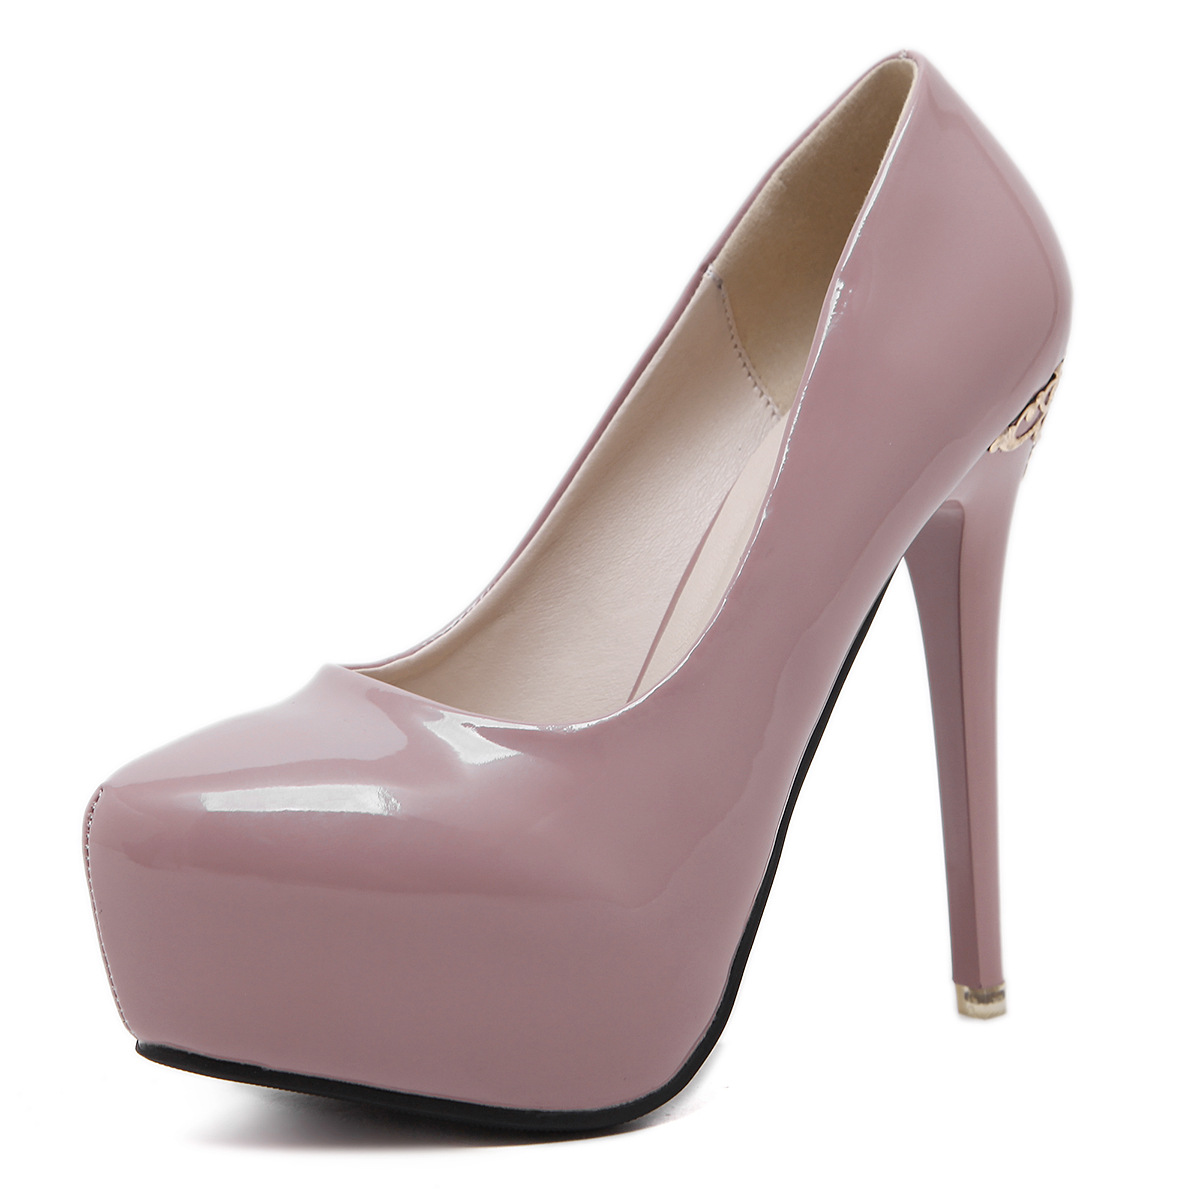 High heels with Platform, Nude shoes women's main photo